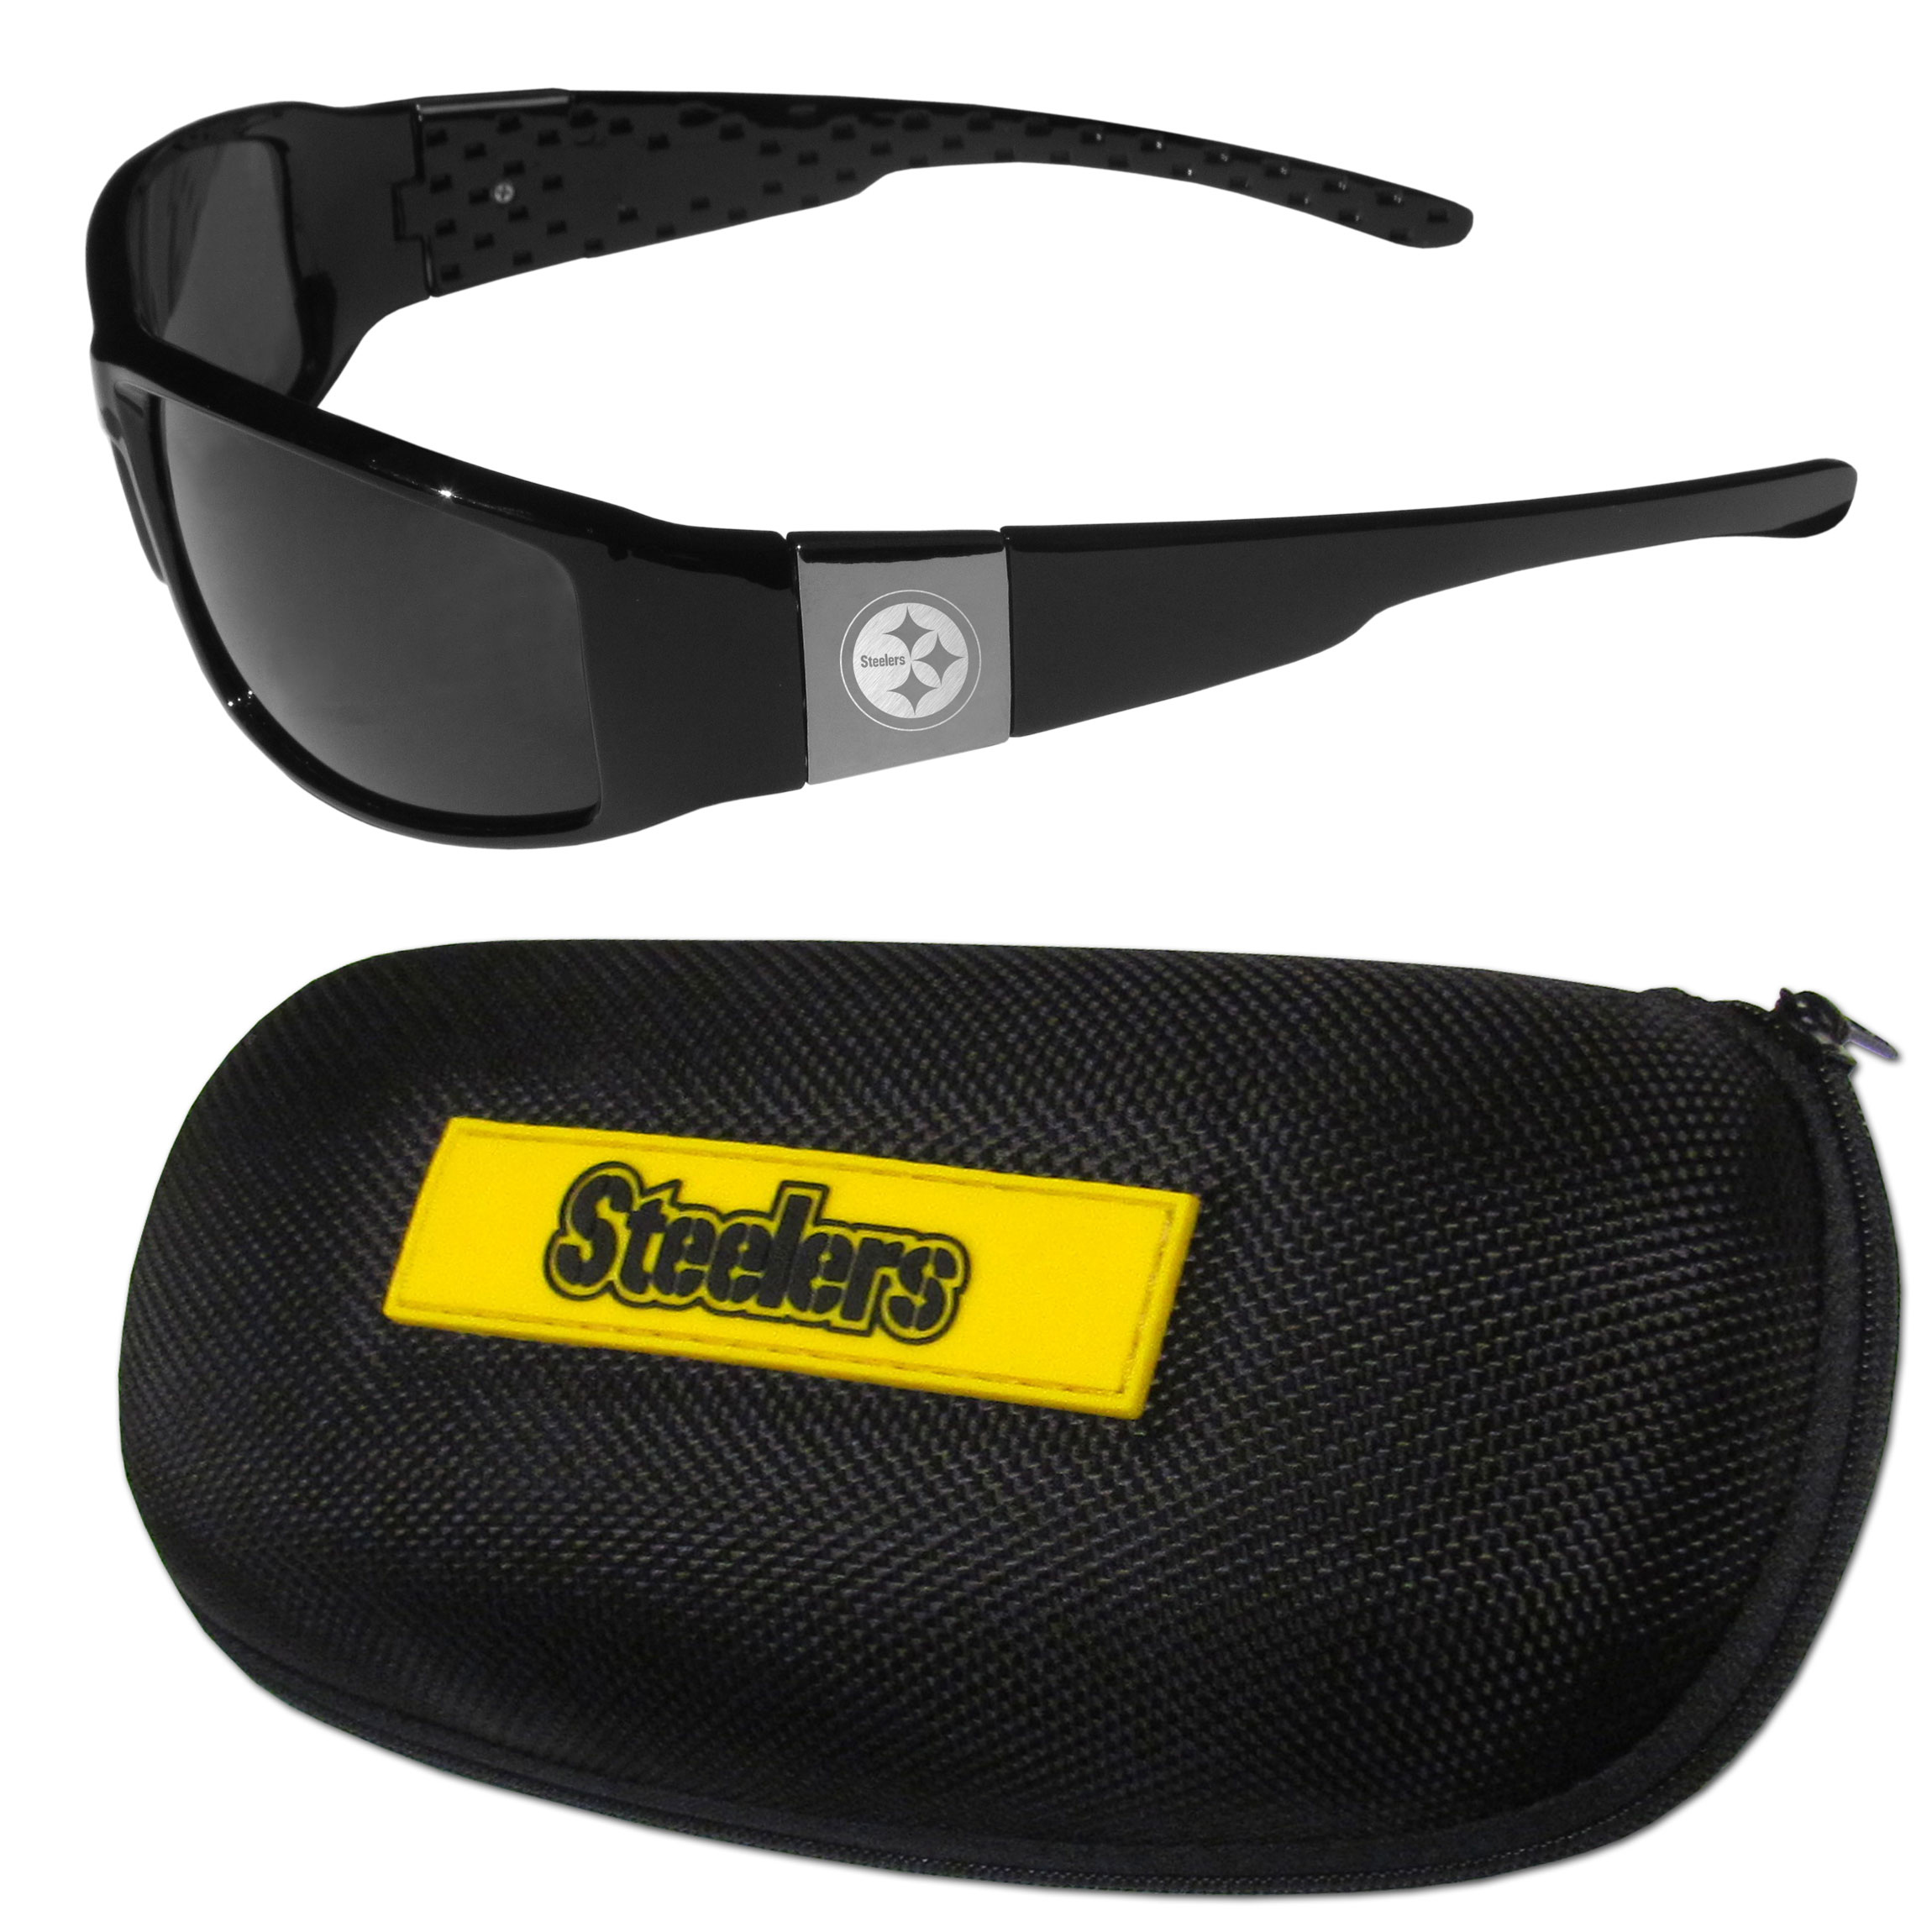 Pittsburgh Steelers Chrome Wrap Sunglasses and Zippered Carrying Case - This set includes our sleek and stylish Pittsburgh Steelers chrome wrap sunglasses and our hard shell, zippered carrying case. The sunglasses feature etched team logos on each arm and 100% UVA/UVB protection. The case features a large and colorful team emblem.